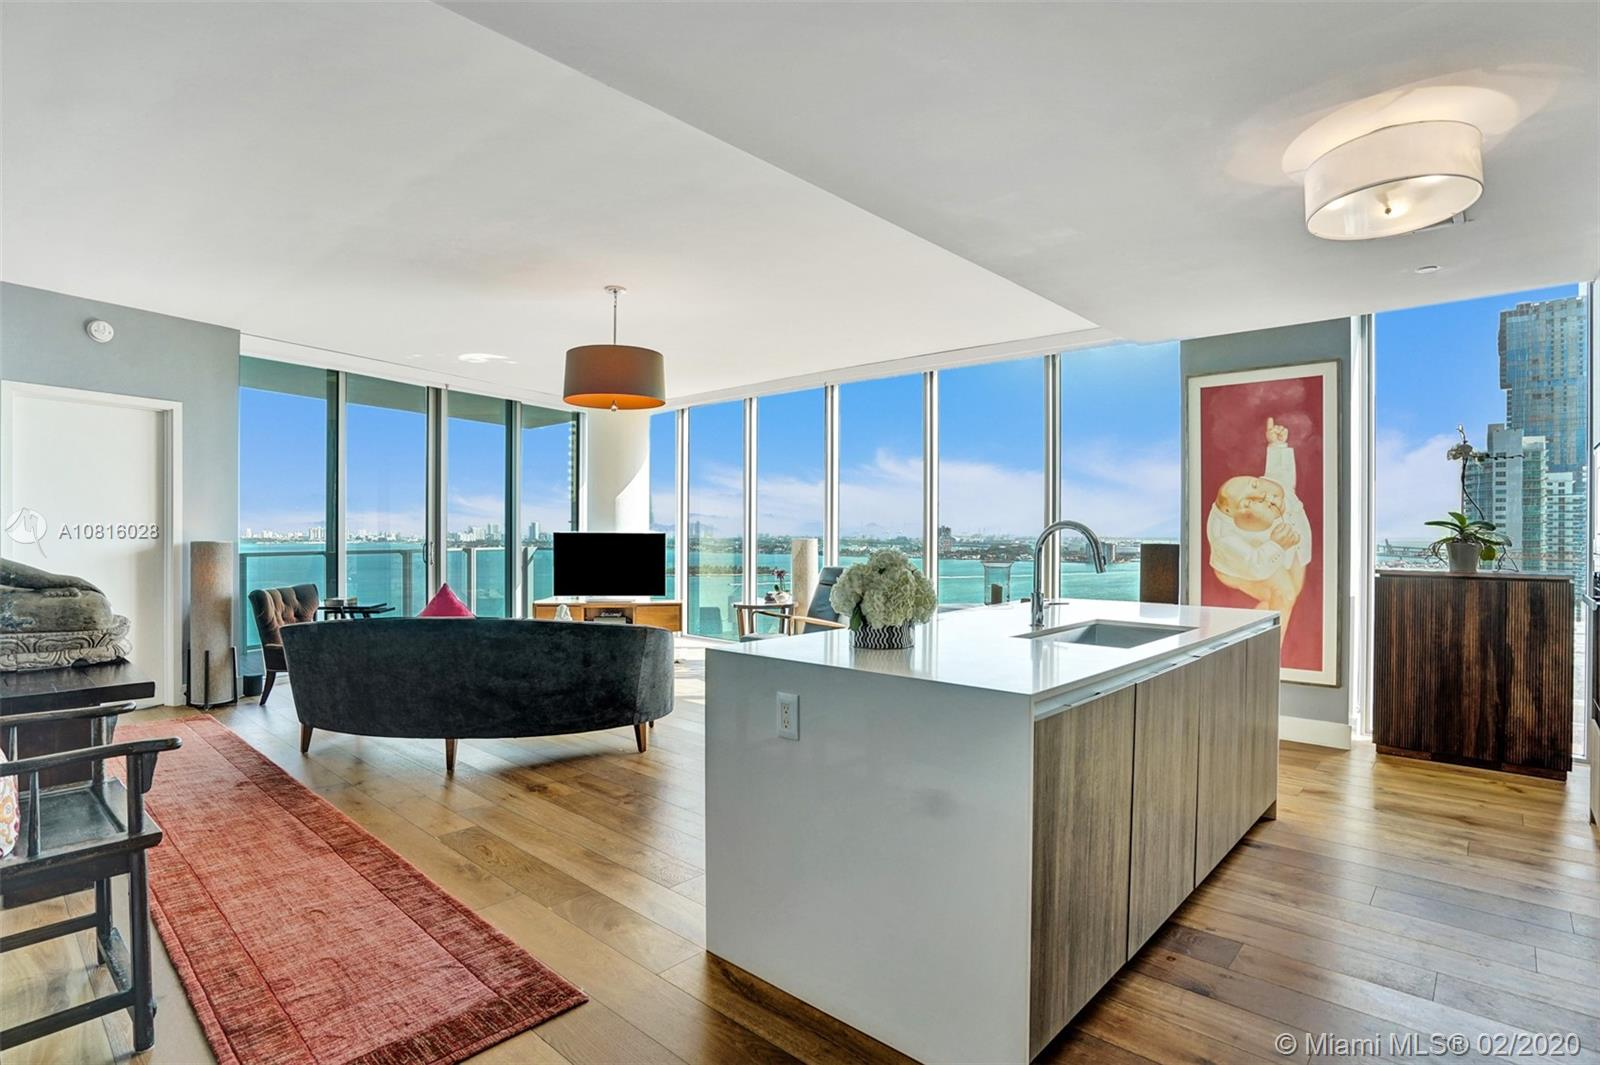 Photo of Biscayne Beach Condo #1907 that clicks through to the property detail page